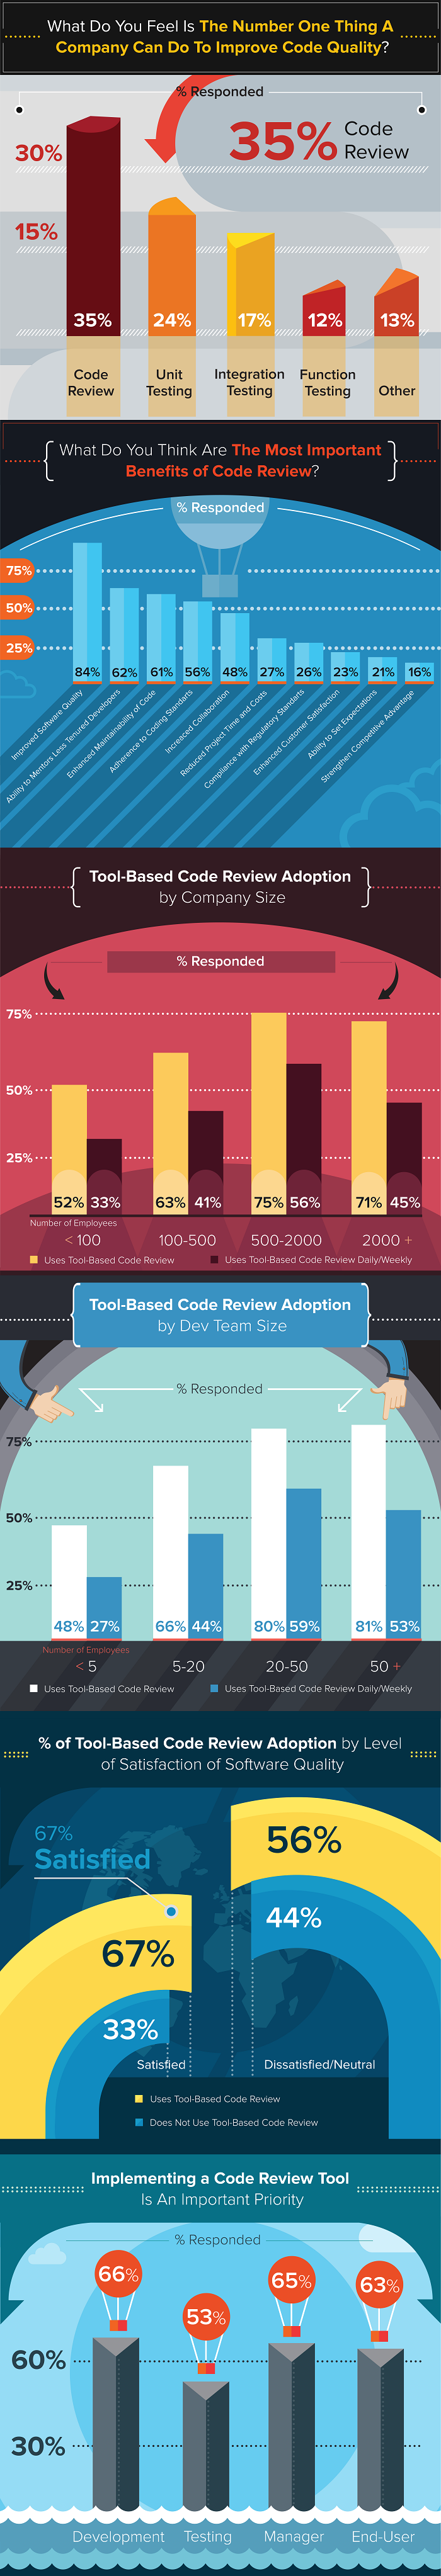 Prioritize The Goals Of Code Reviews With Your Team